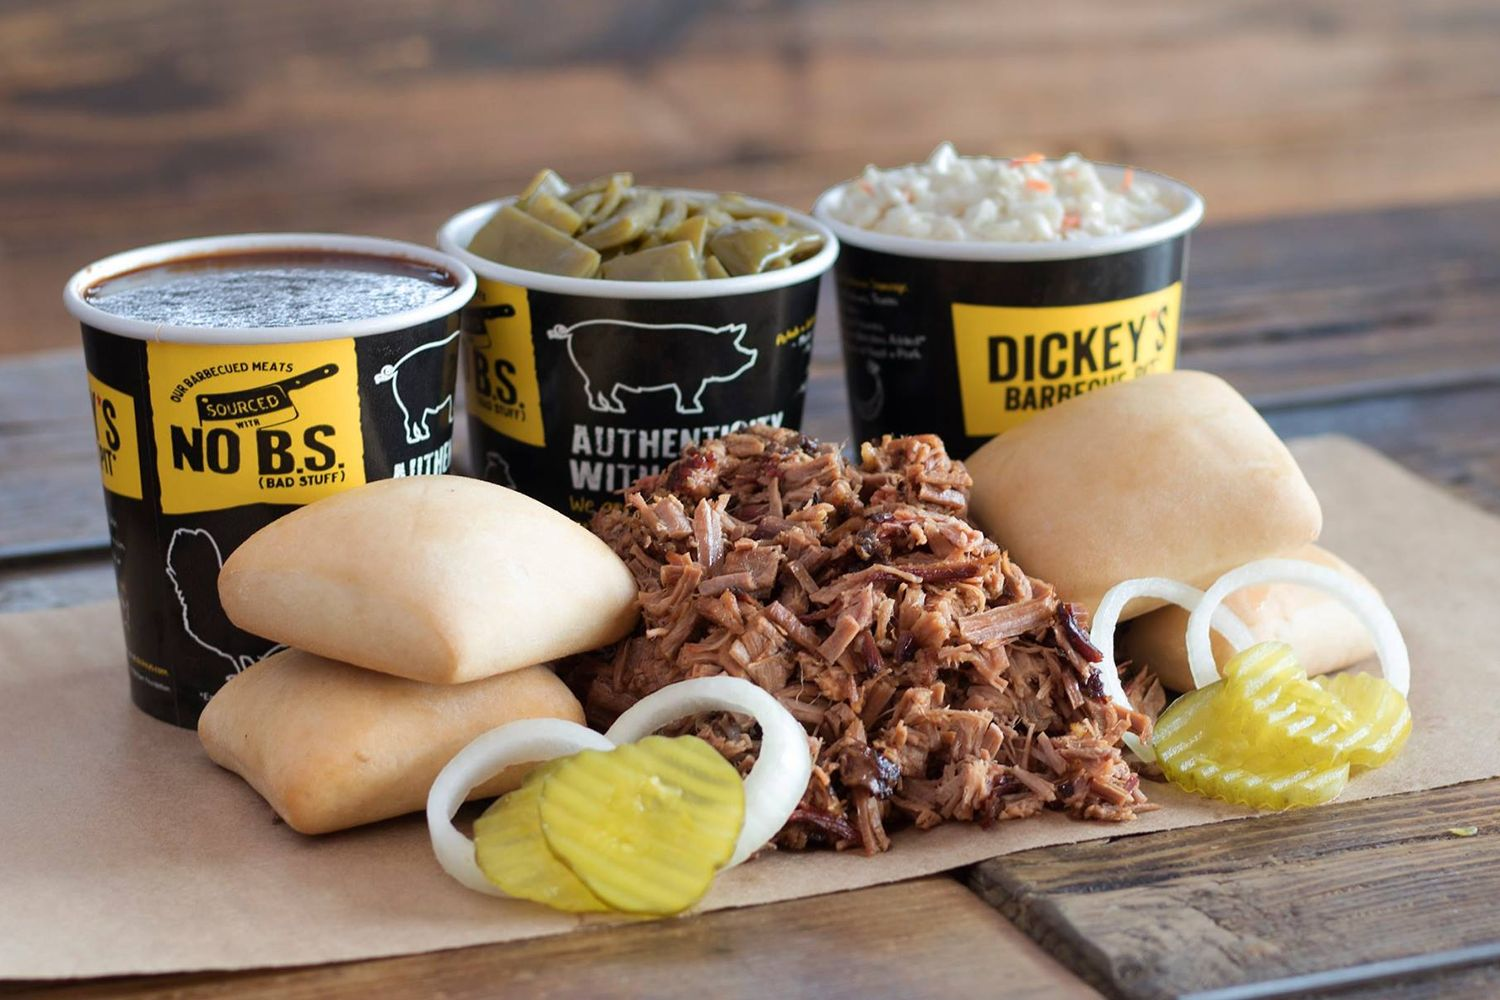 Local Entrepreneur Brings Dickey's Texas-Style Barbecue to Delano